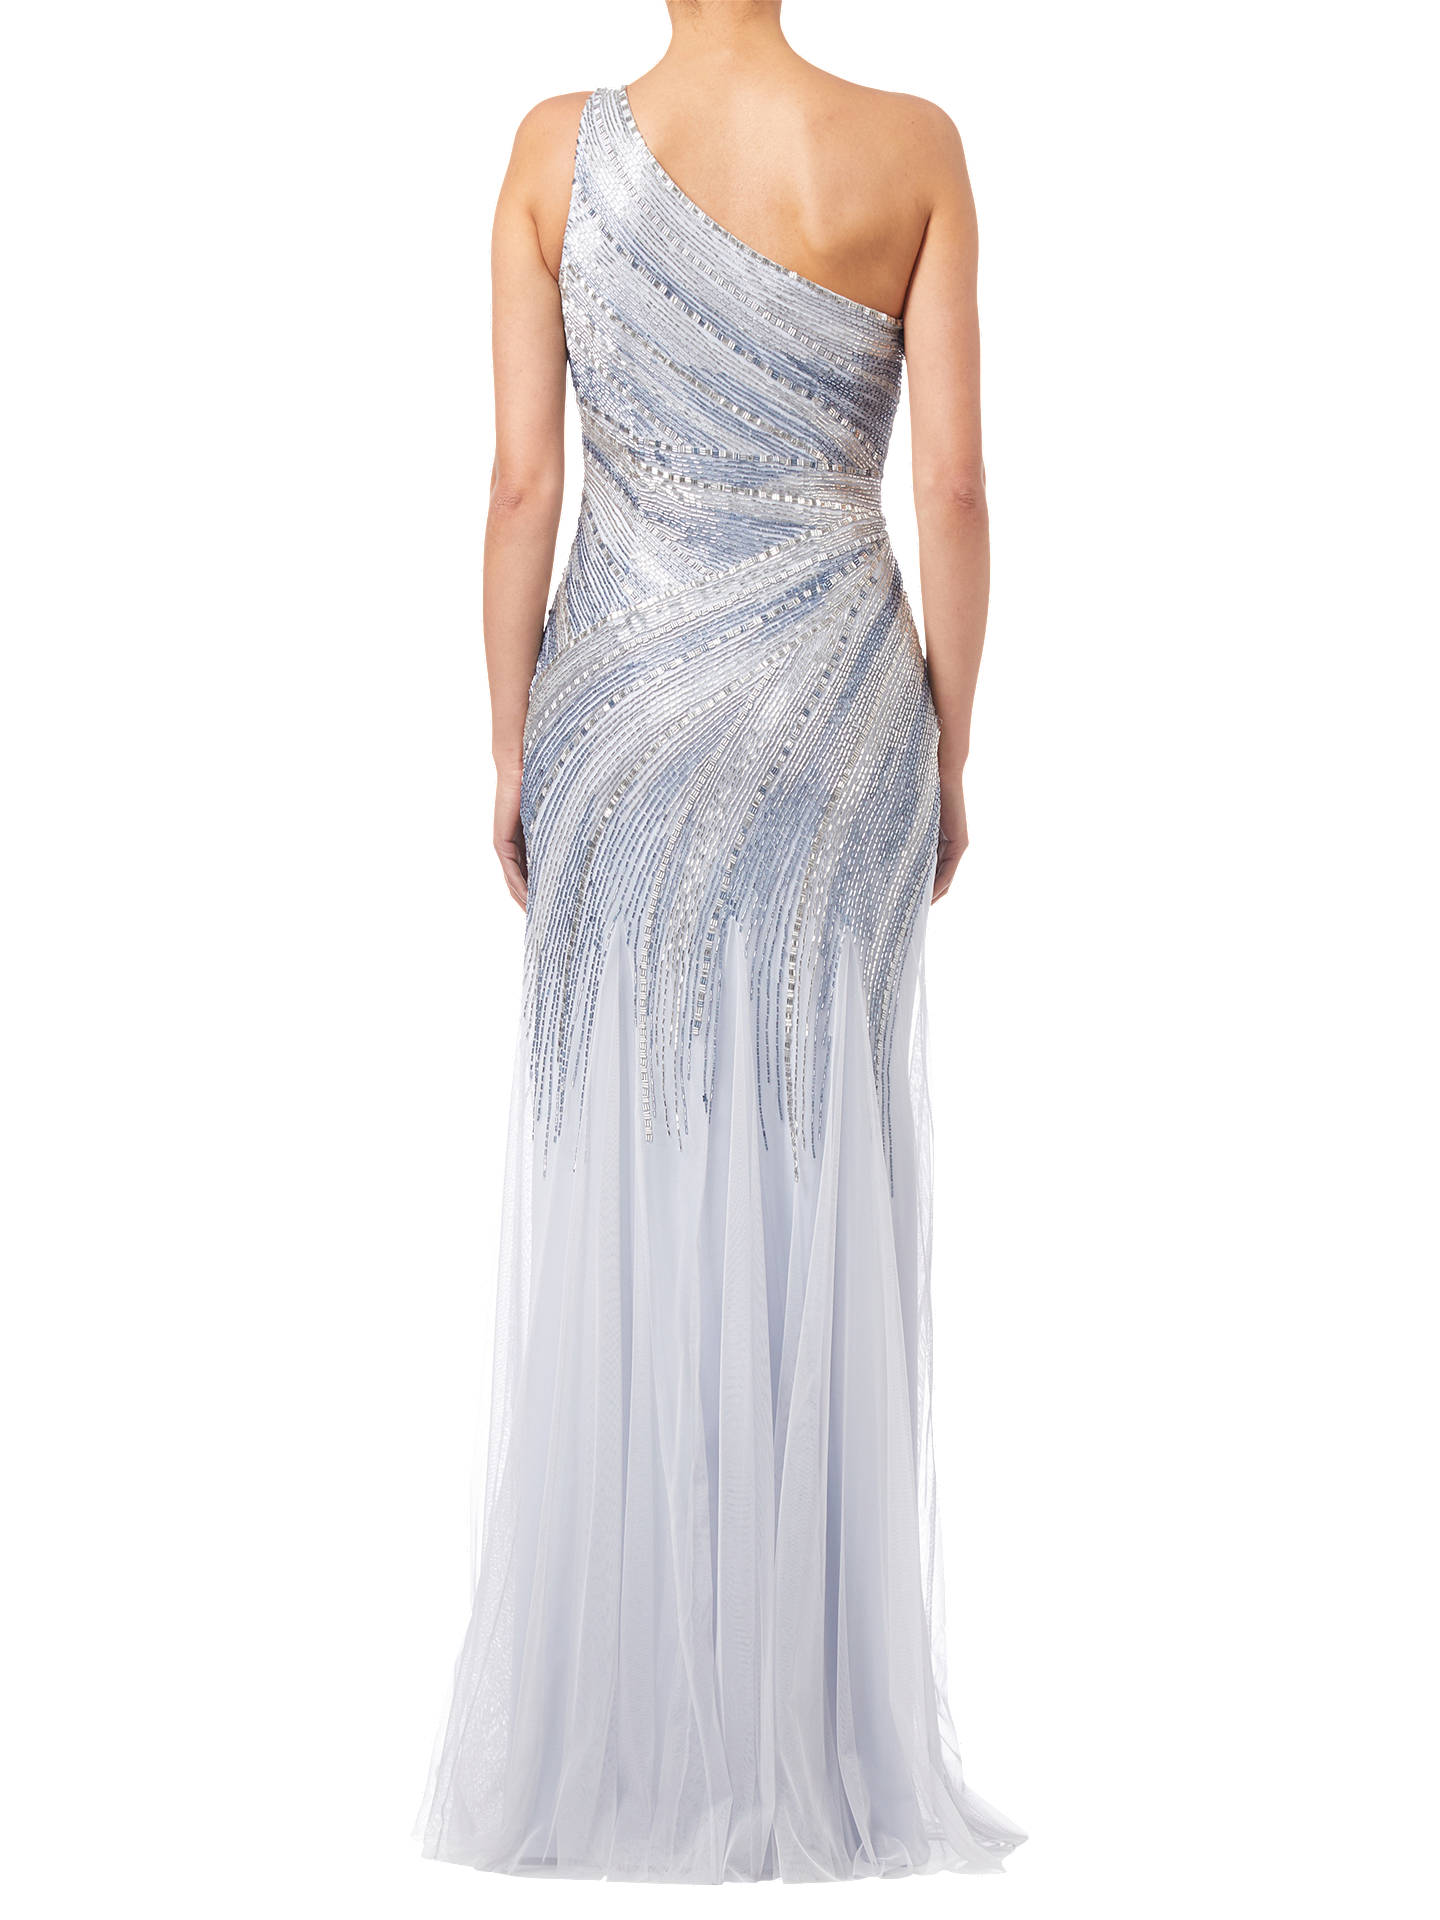 Buy Adrianna Papell Beaded Mermaid Gown, Serenity, 8 Online at johnlewis.com